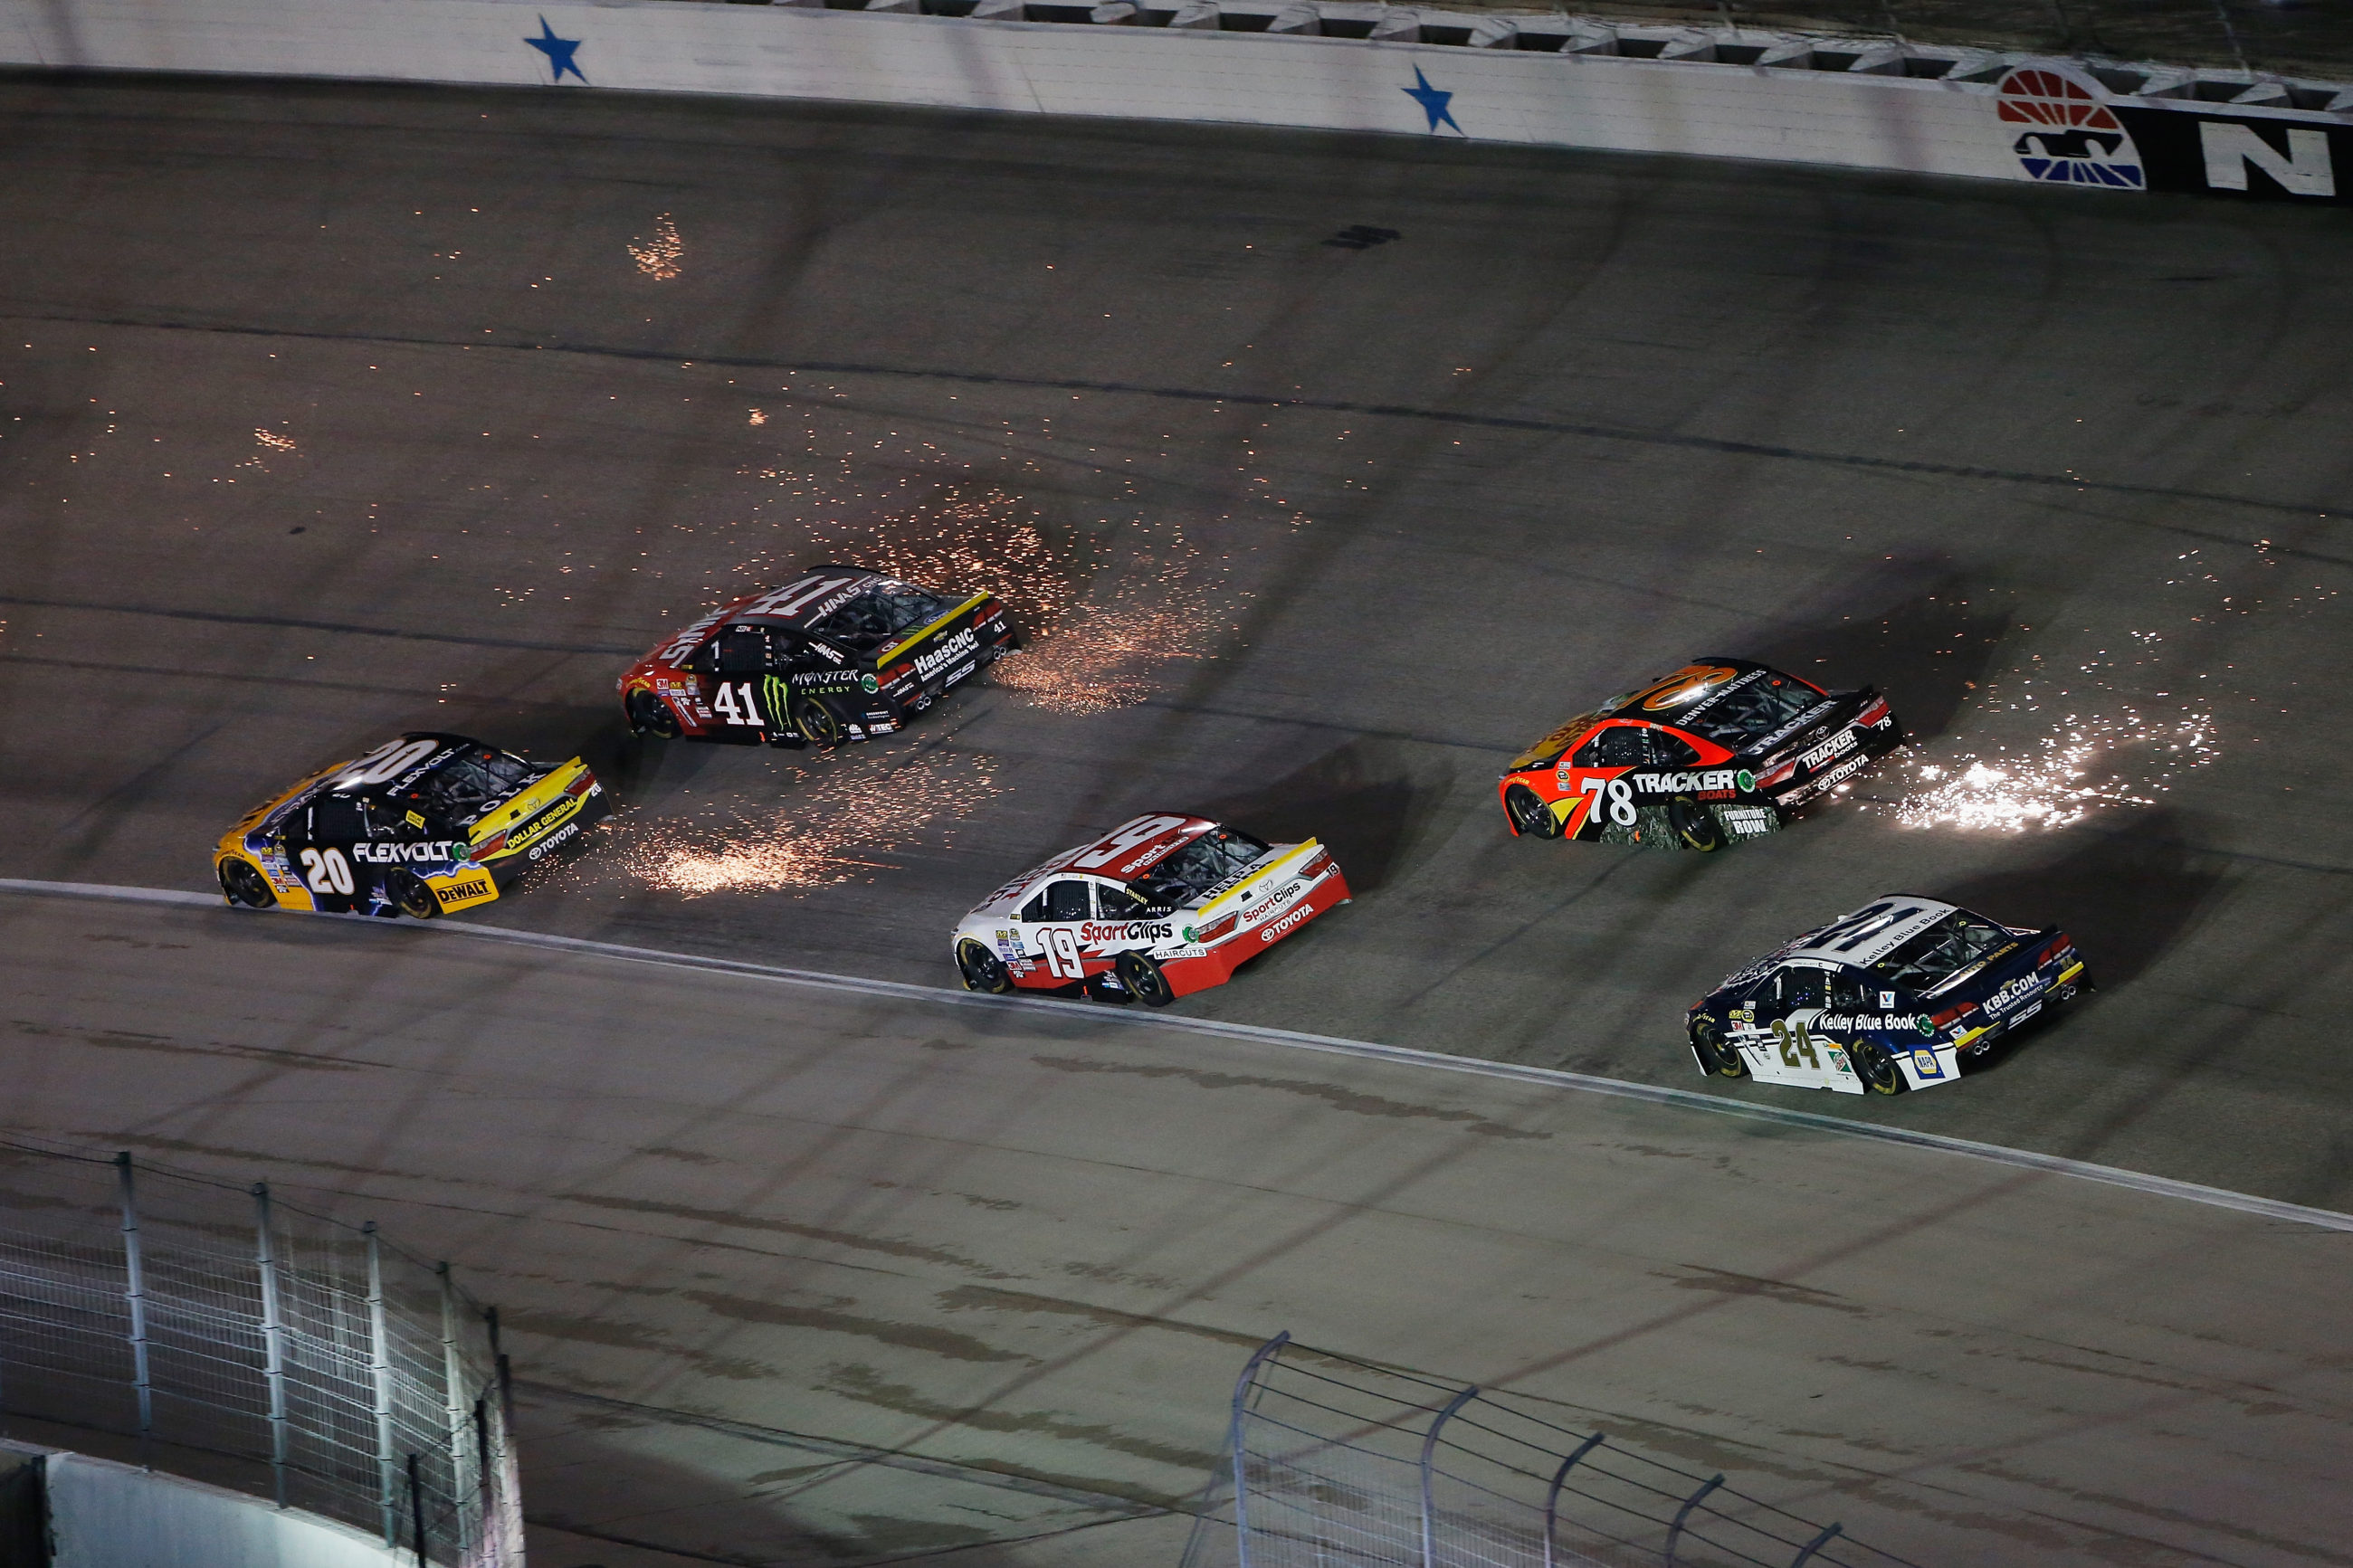 Brian France Talks New NASCAR Chase Changes - 2017 Chase Rules Change?